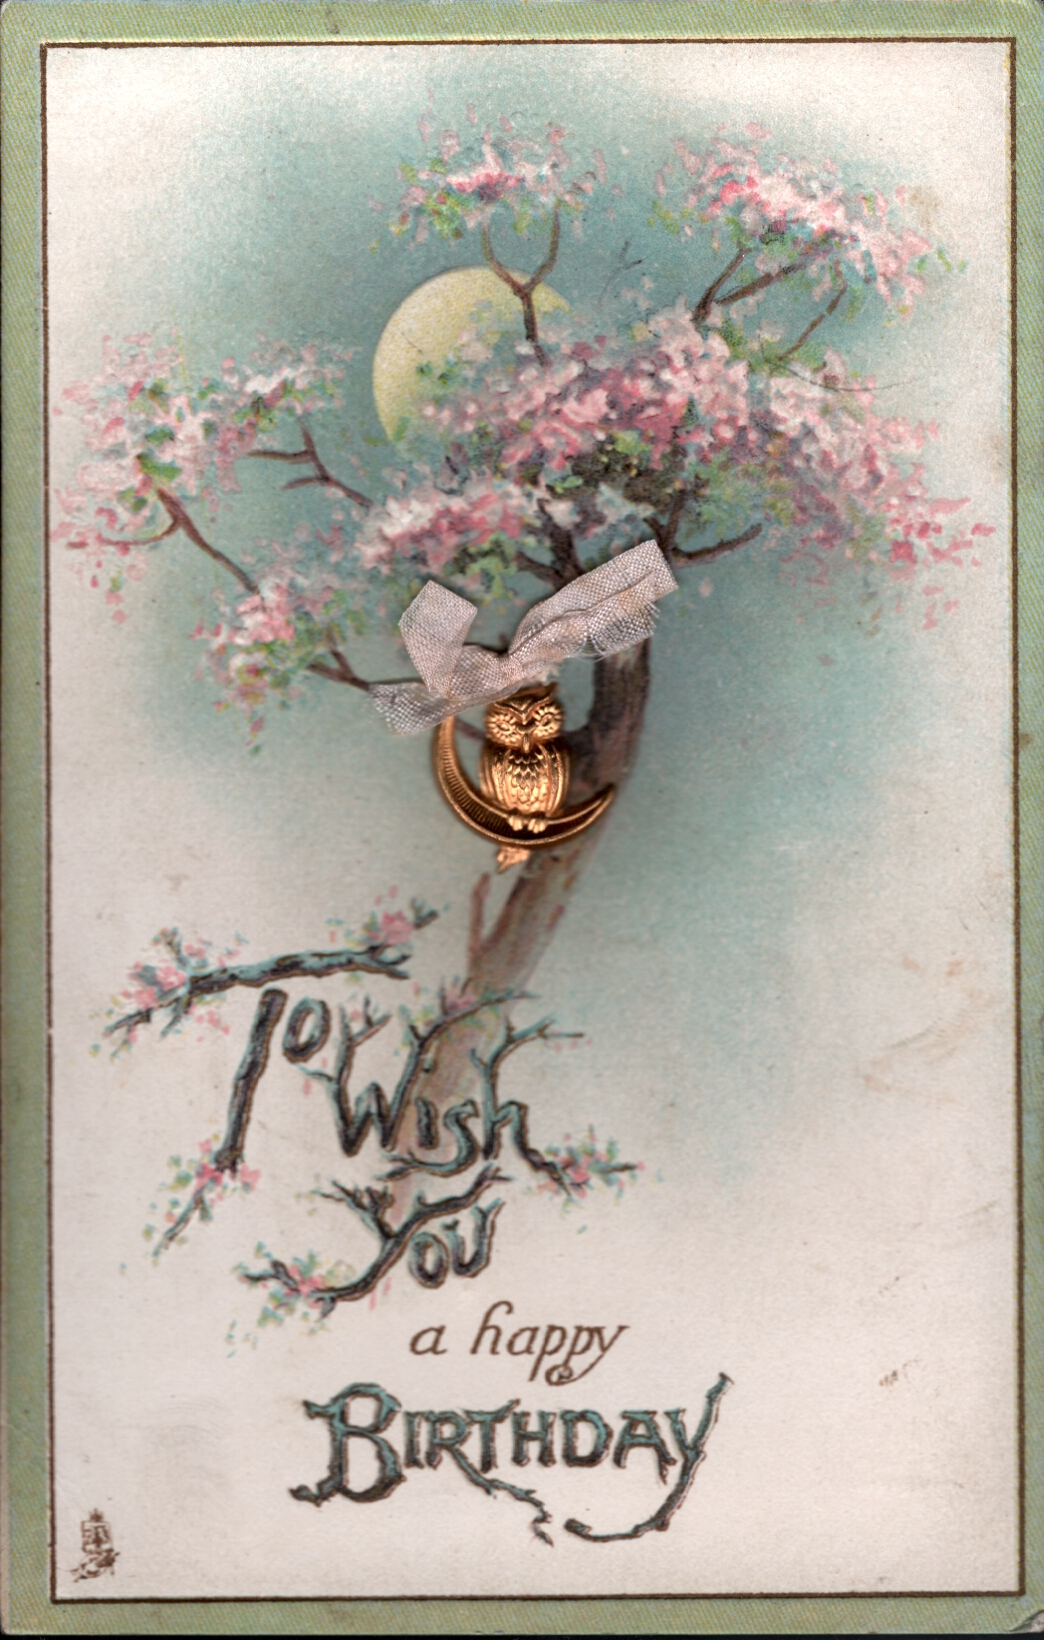 TO WISH YOU A HAPPY BIRTHDAY Blossom Tree Half Moon